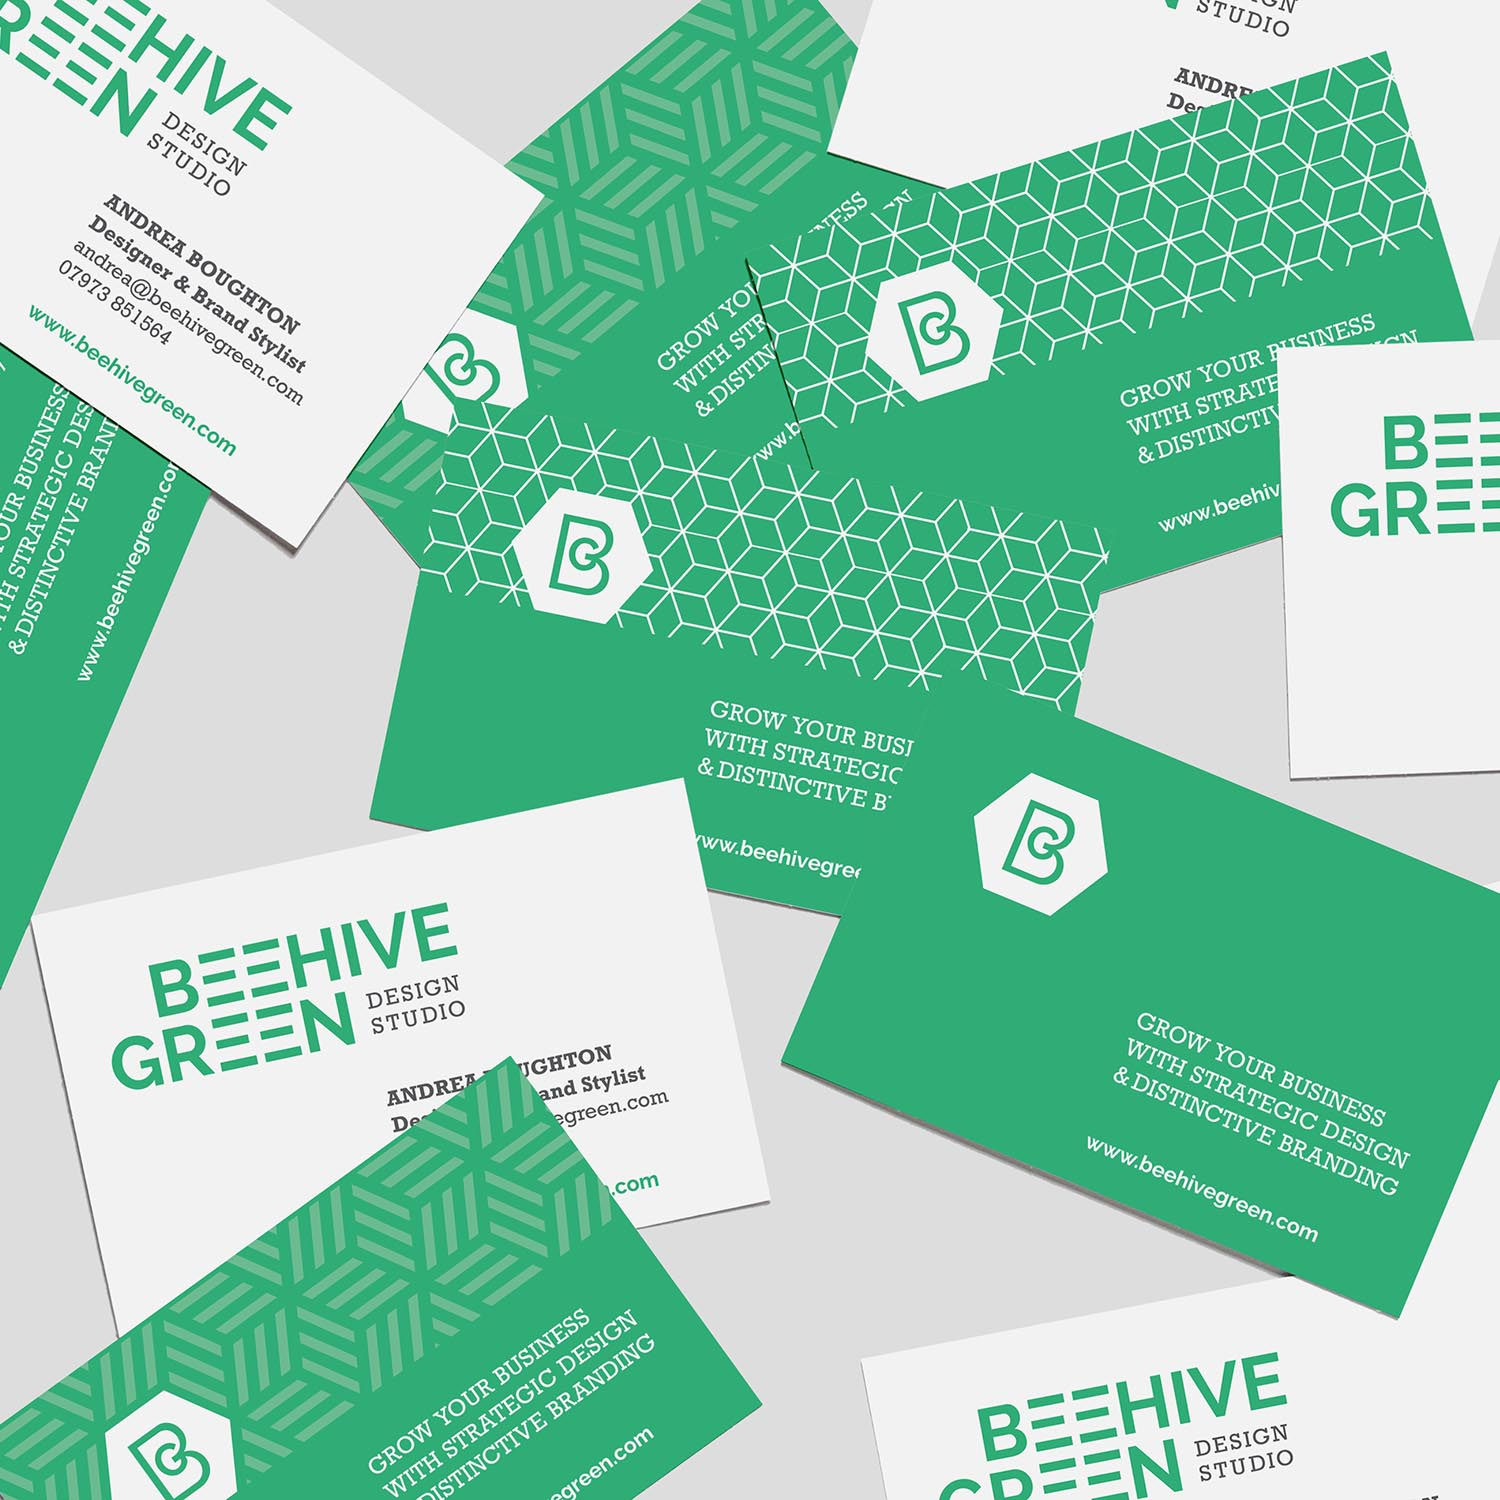 Branding Packages | Premium Package | Beehive Green Design Studio | Logo and Branding Design, WGC, Hertfordshire